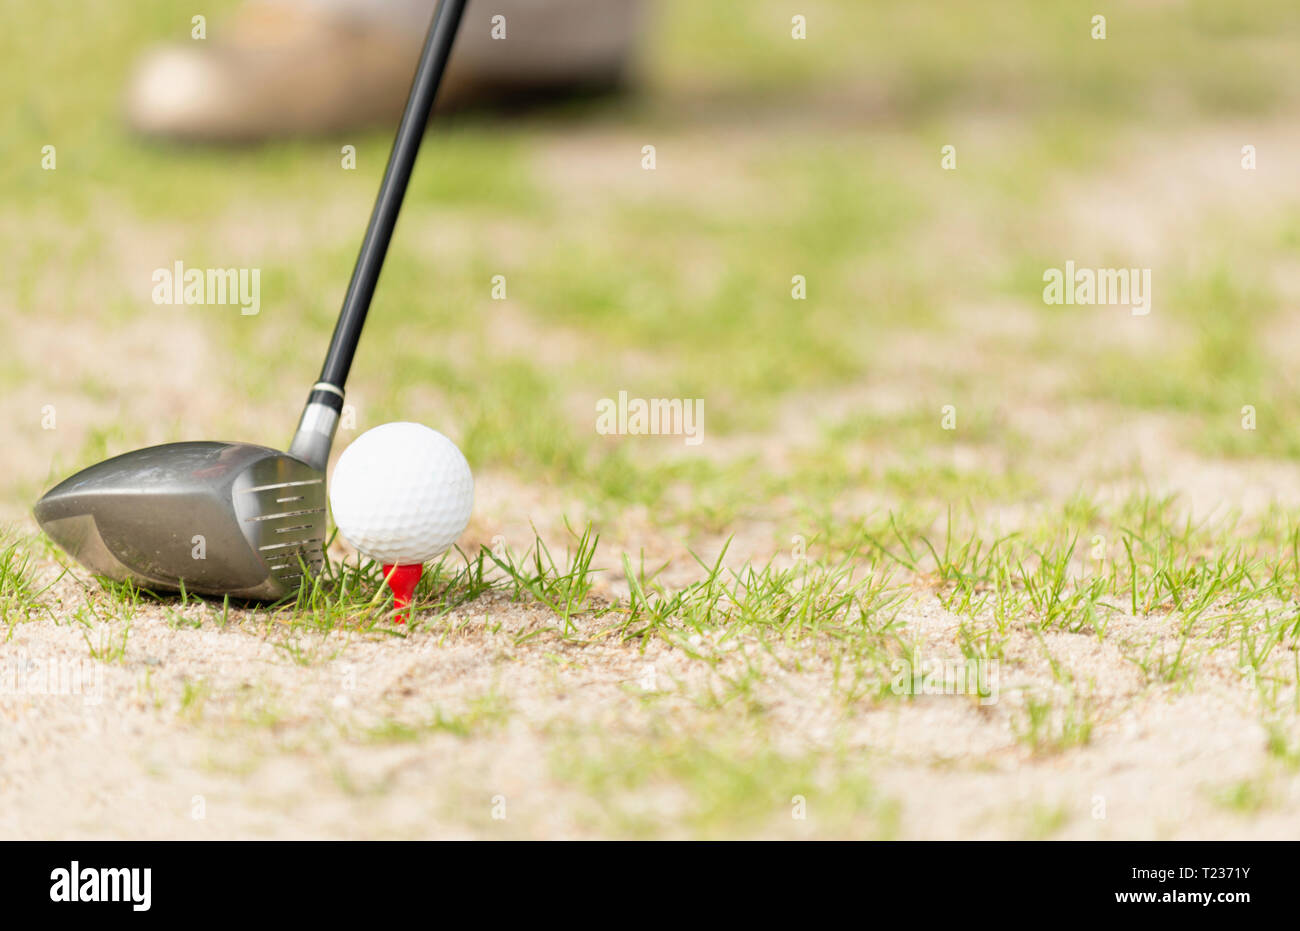 Driver golf club behind a ball on tee. Selective focus, convenient copy space. - Stock Image